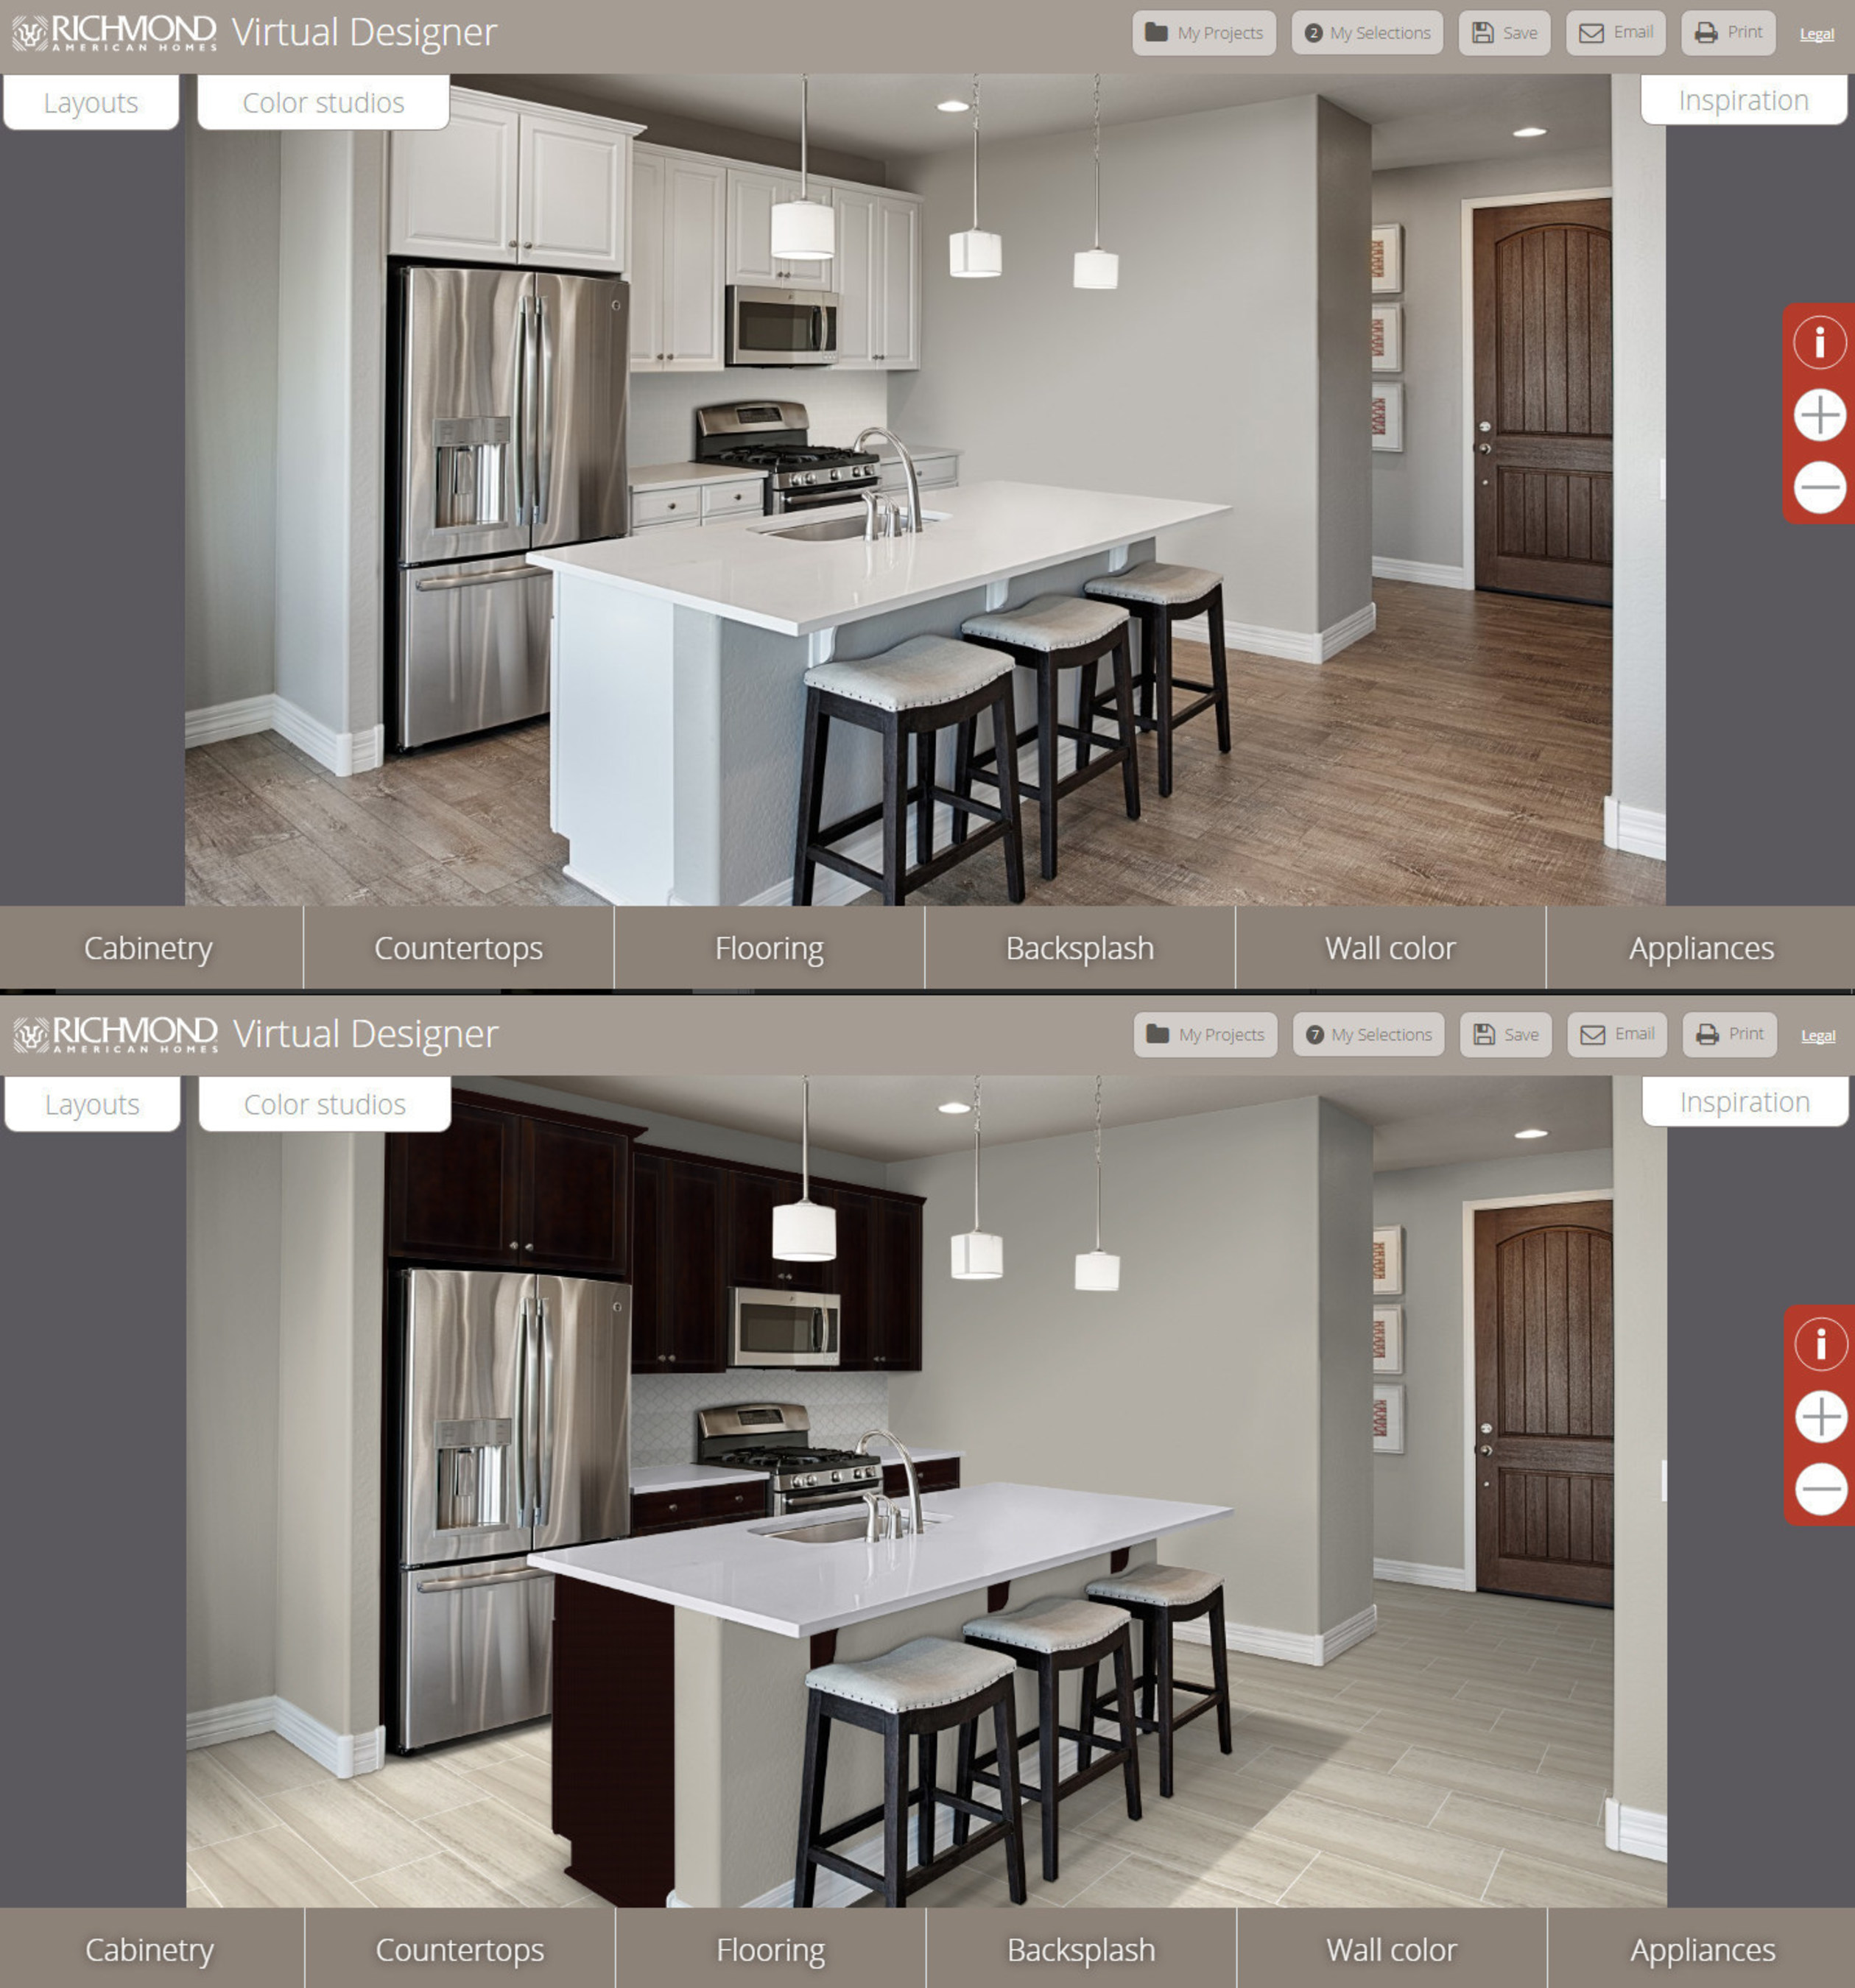 Two virtual kitchens showcase a variety of personalization options.